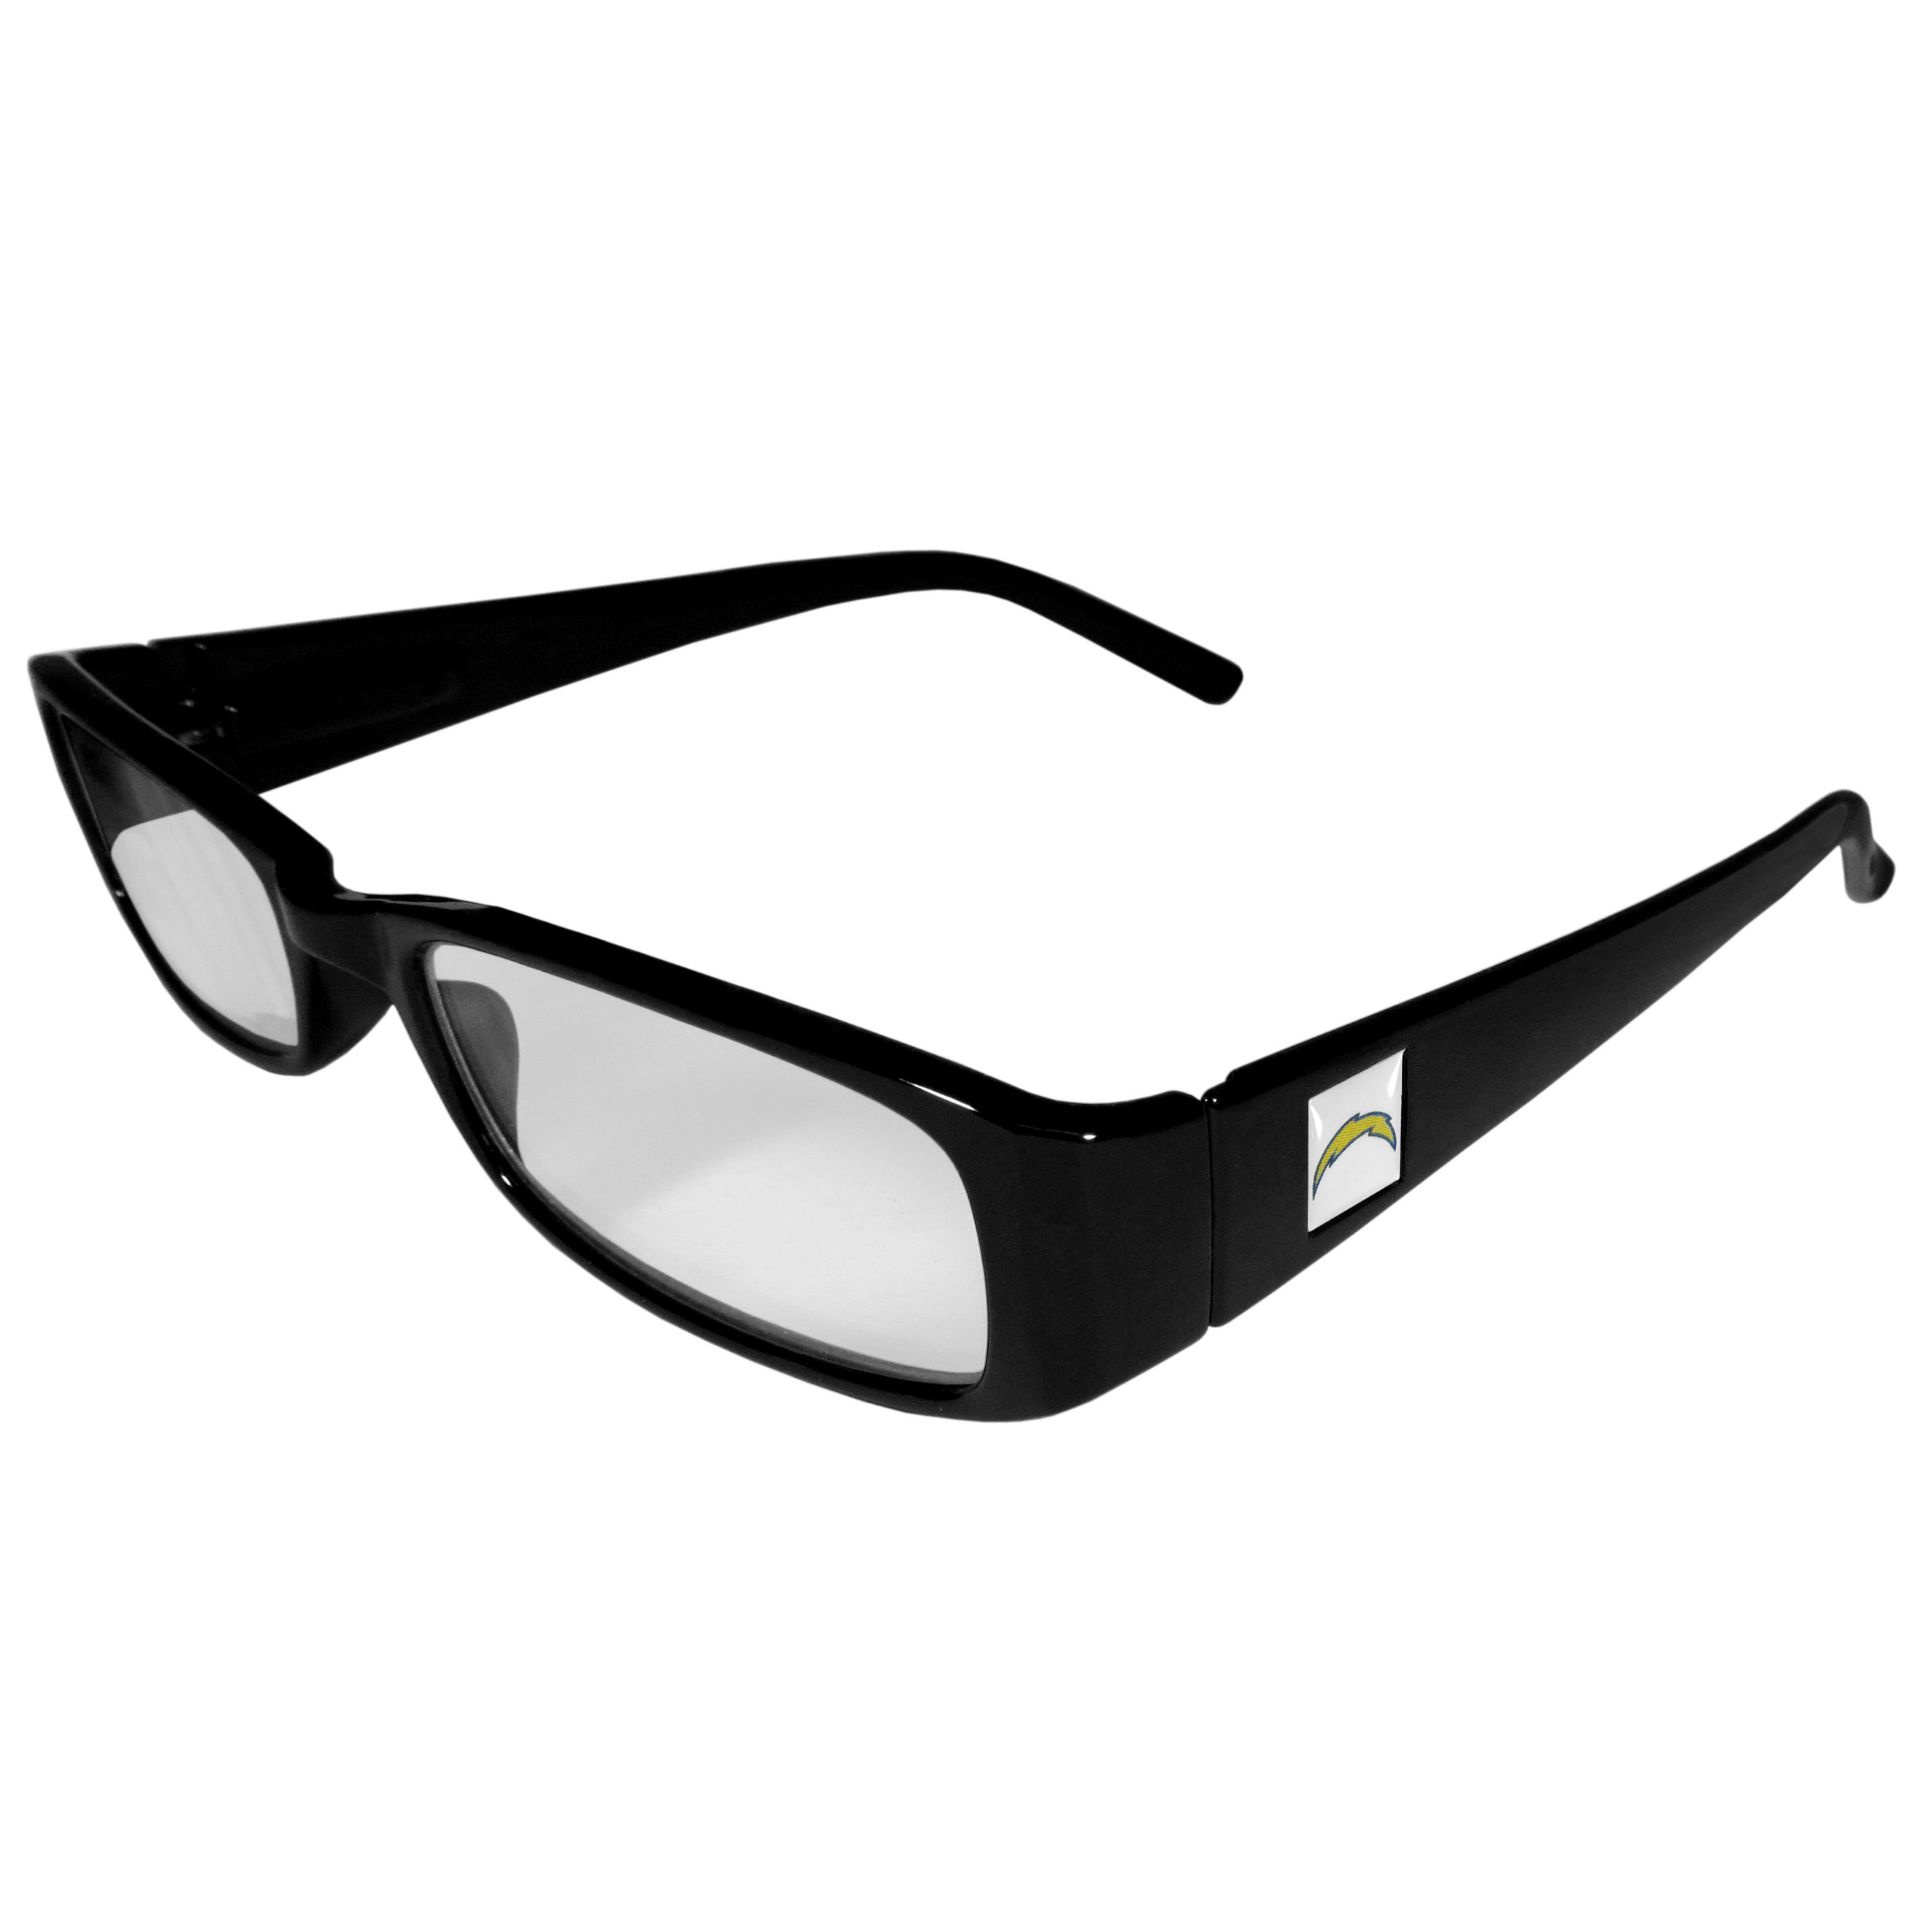 Los Angeles Chargers Black Reading Glasses +1.25 - Our Los Angeles Chargers reading glasses are 5.25 inches wide and feature the team logo on each arm. Magnification Power 1.25